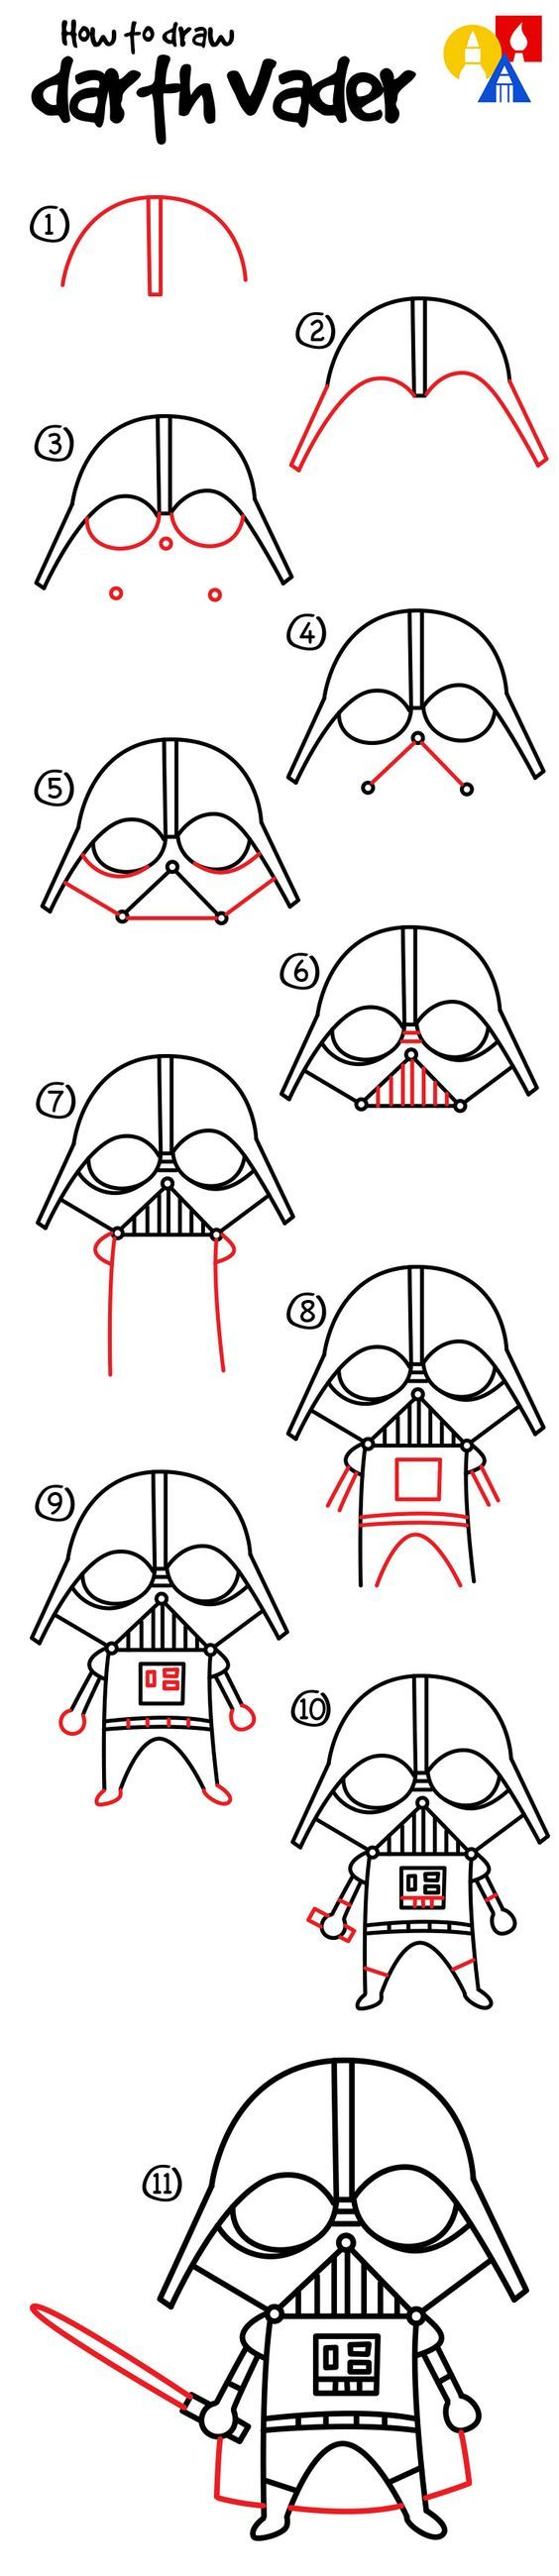 darth vader helmet step by step how to draw